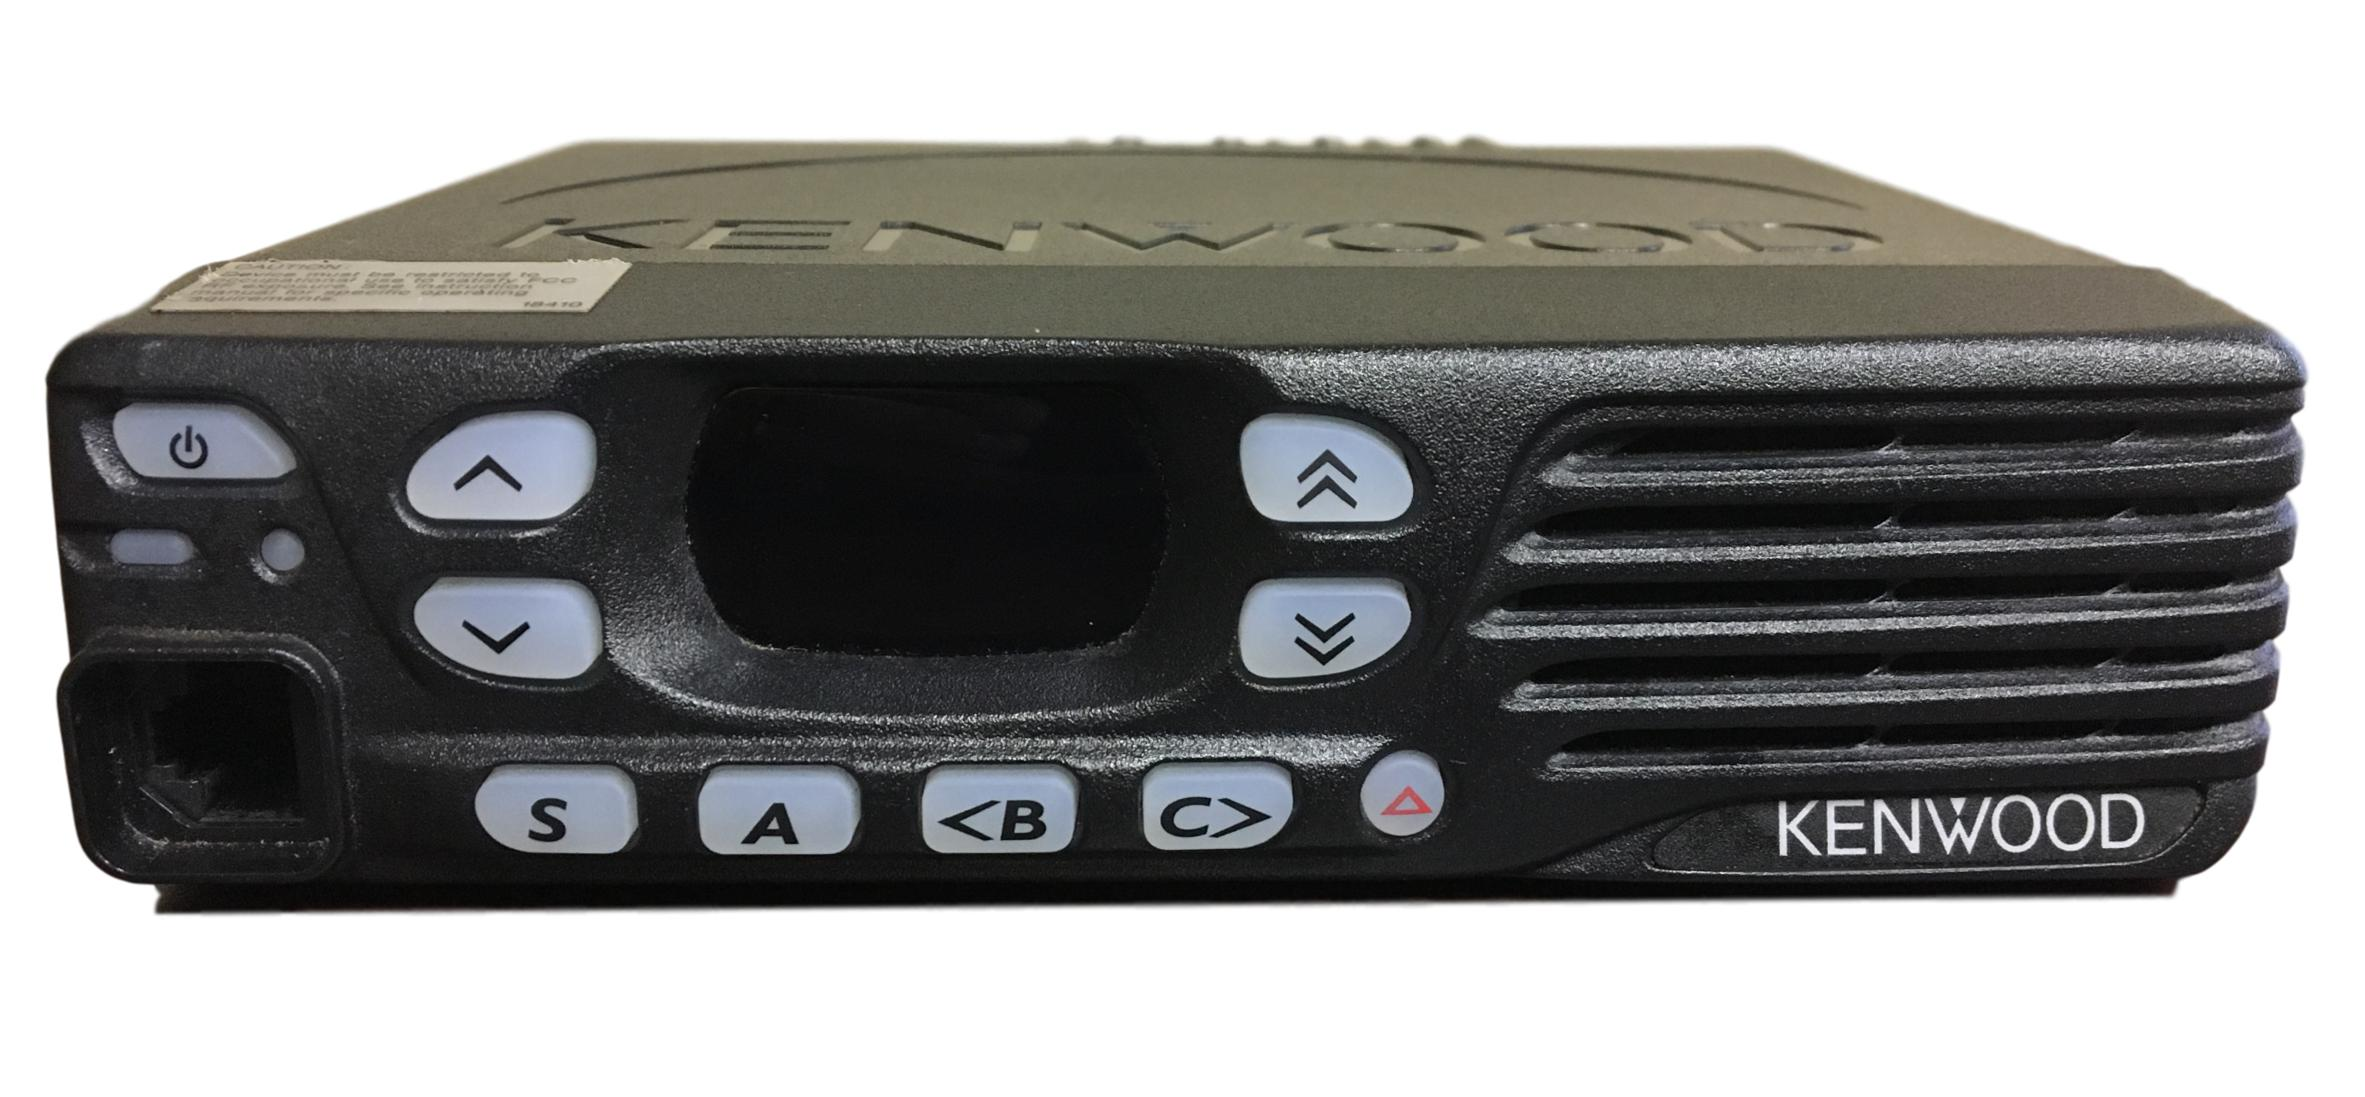 Kenwood TK-7302 / H Mobile Vehicle Radio